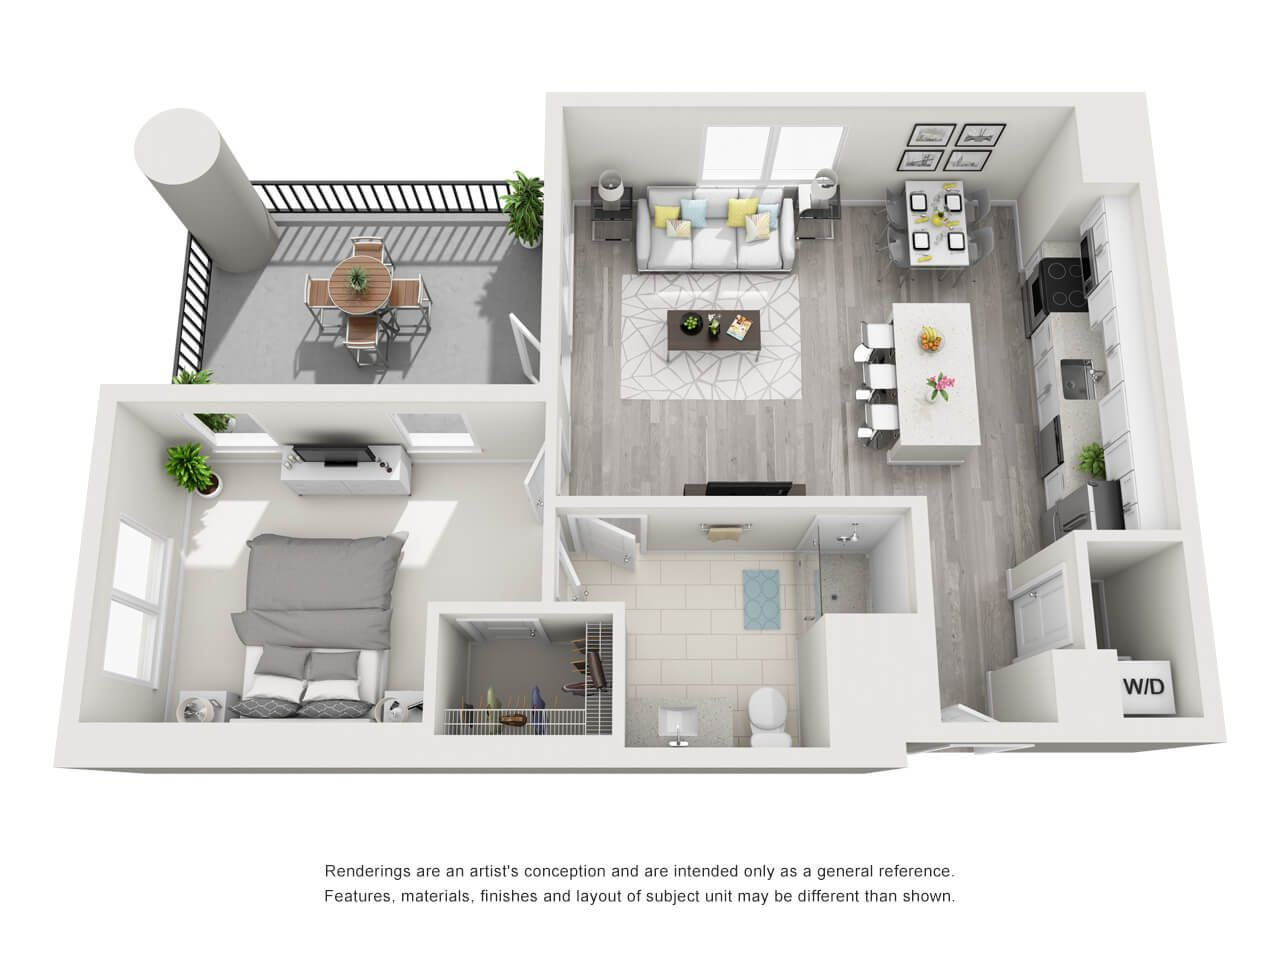 500 Harbour Island Offers Studio One And Two Bedroom Apartments With Upscale Finishes On Harbour Is Apartment Layout Sims House Plans Studio Apartment Layout